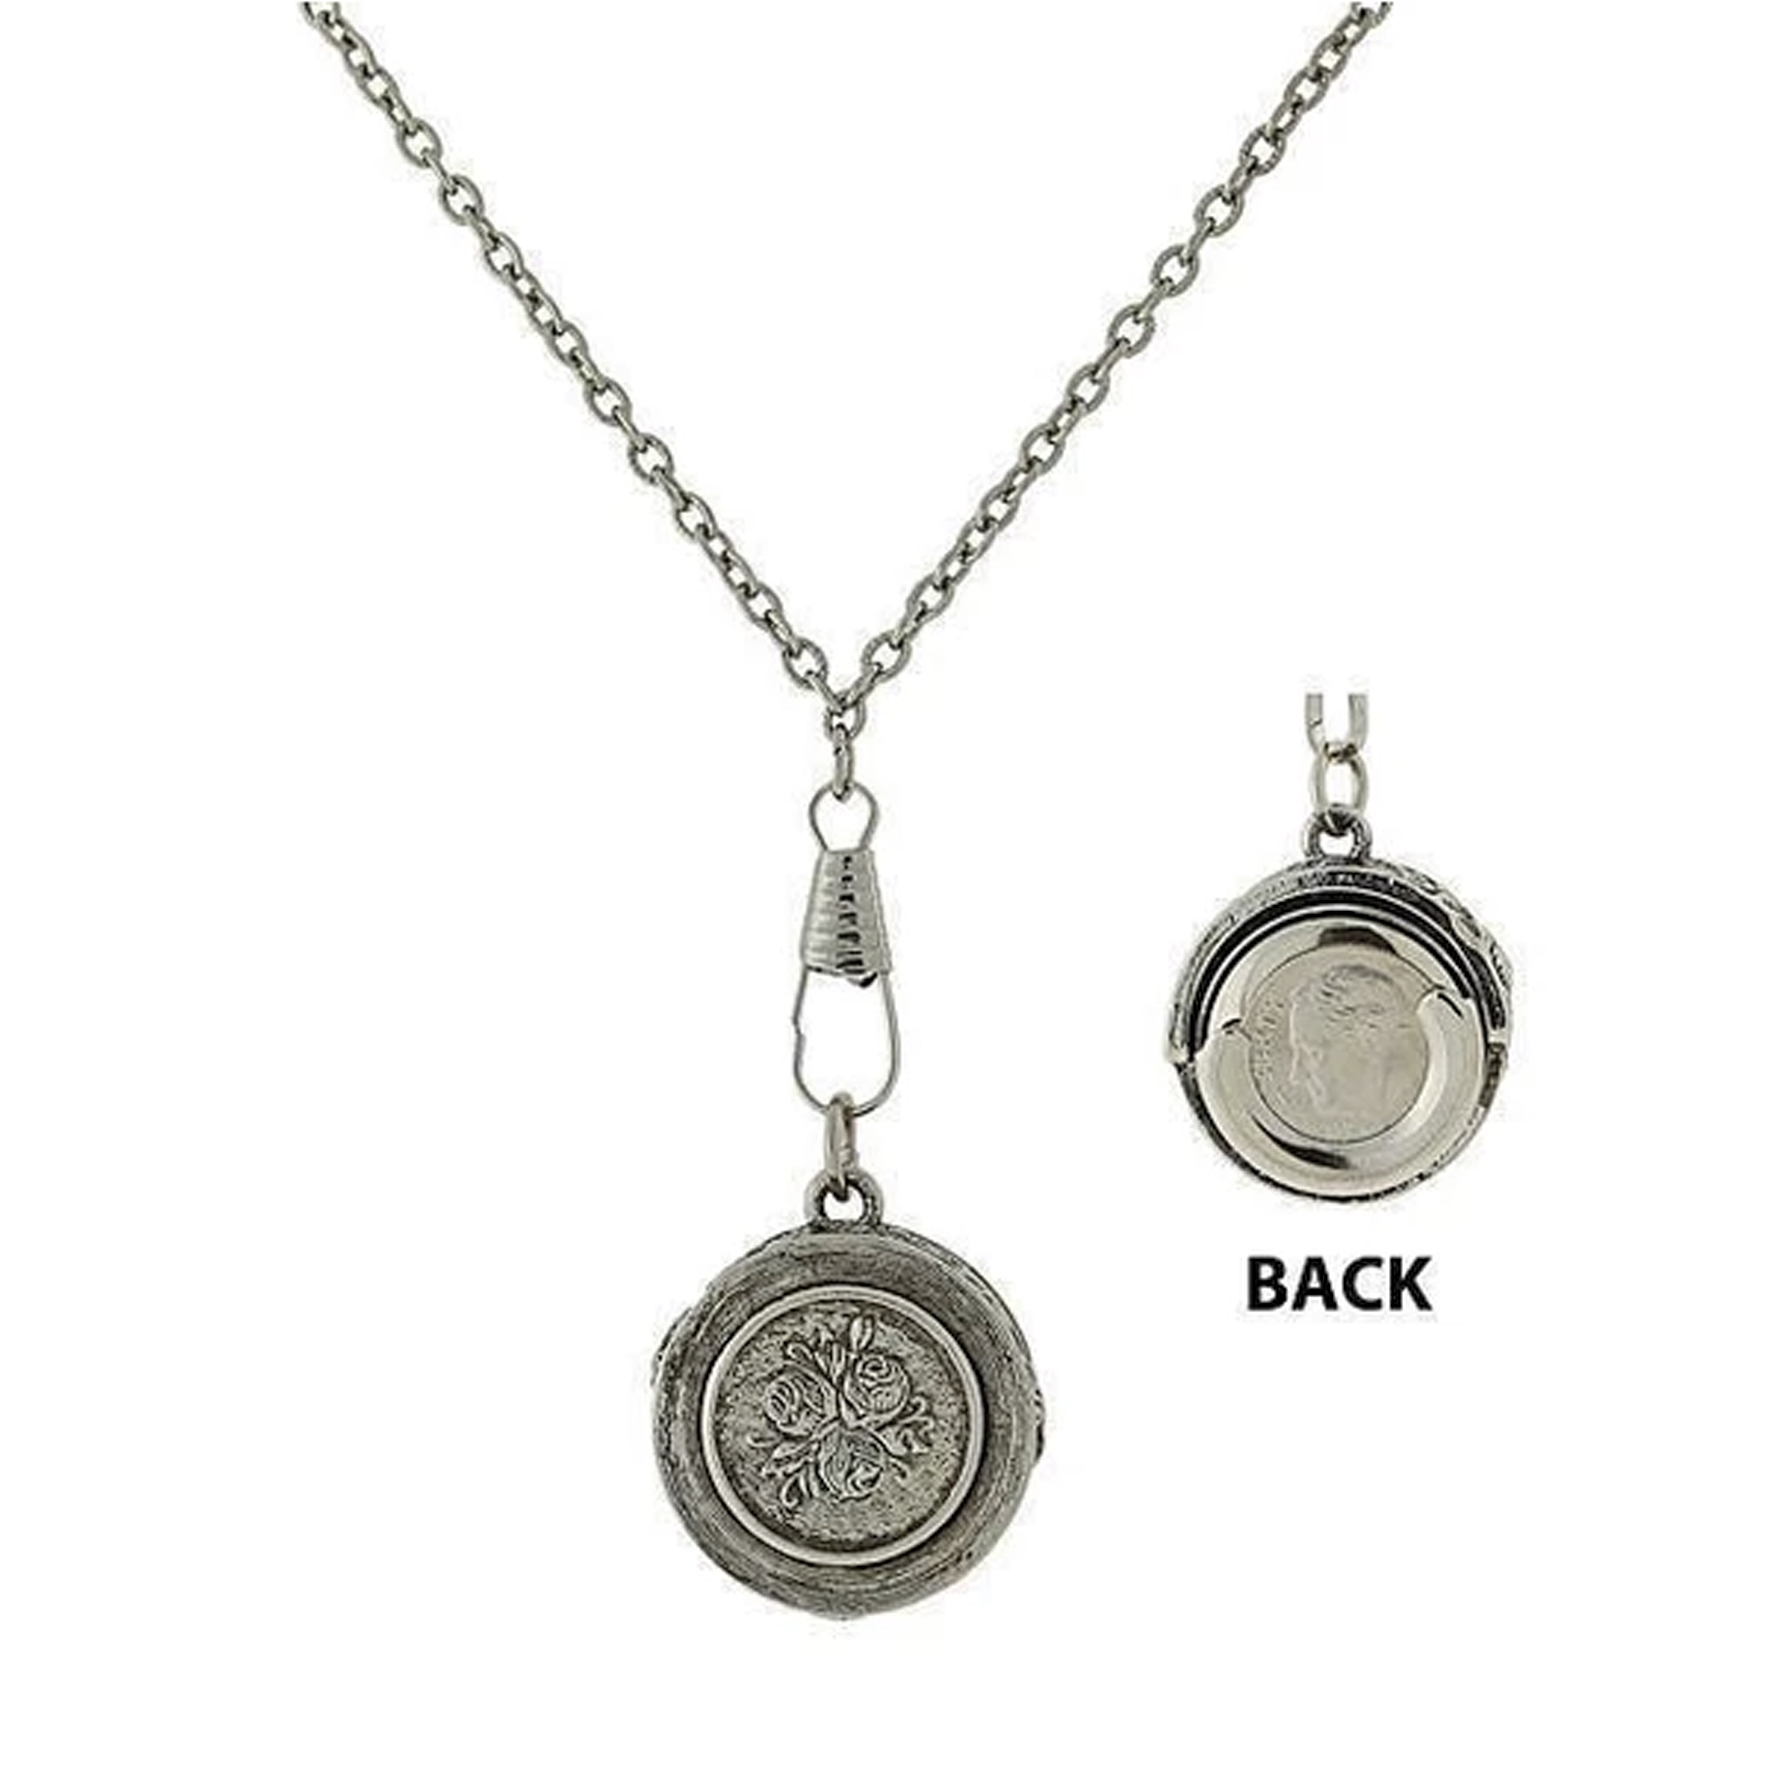 1928 Jewelry Company, pendant dime holder necklace, jewelry necklace, necklace, dime holder, silver-tone, US-made, pewter, reprise, 1928 pieces, B'sue by 1928, B'sue Boutiques, 30-inch necklace, pendant holder necklace, pendant necklace, 1928-01464